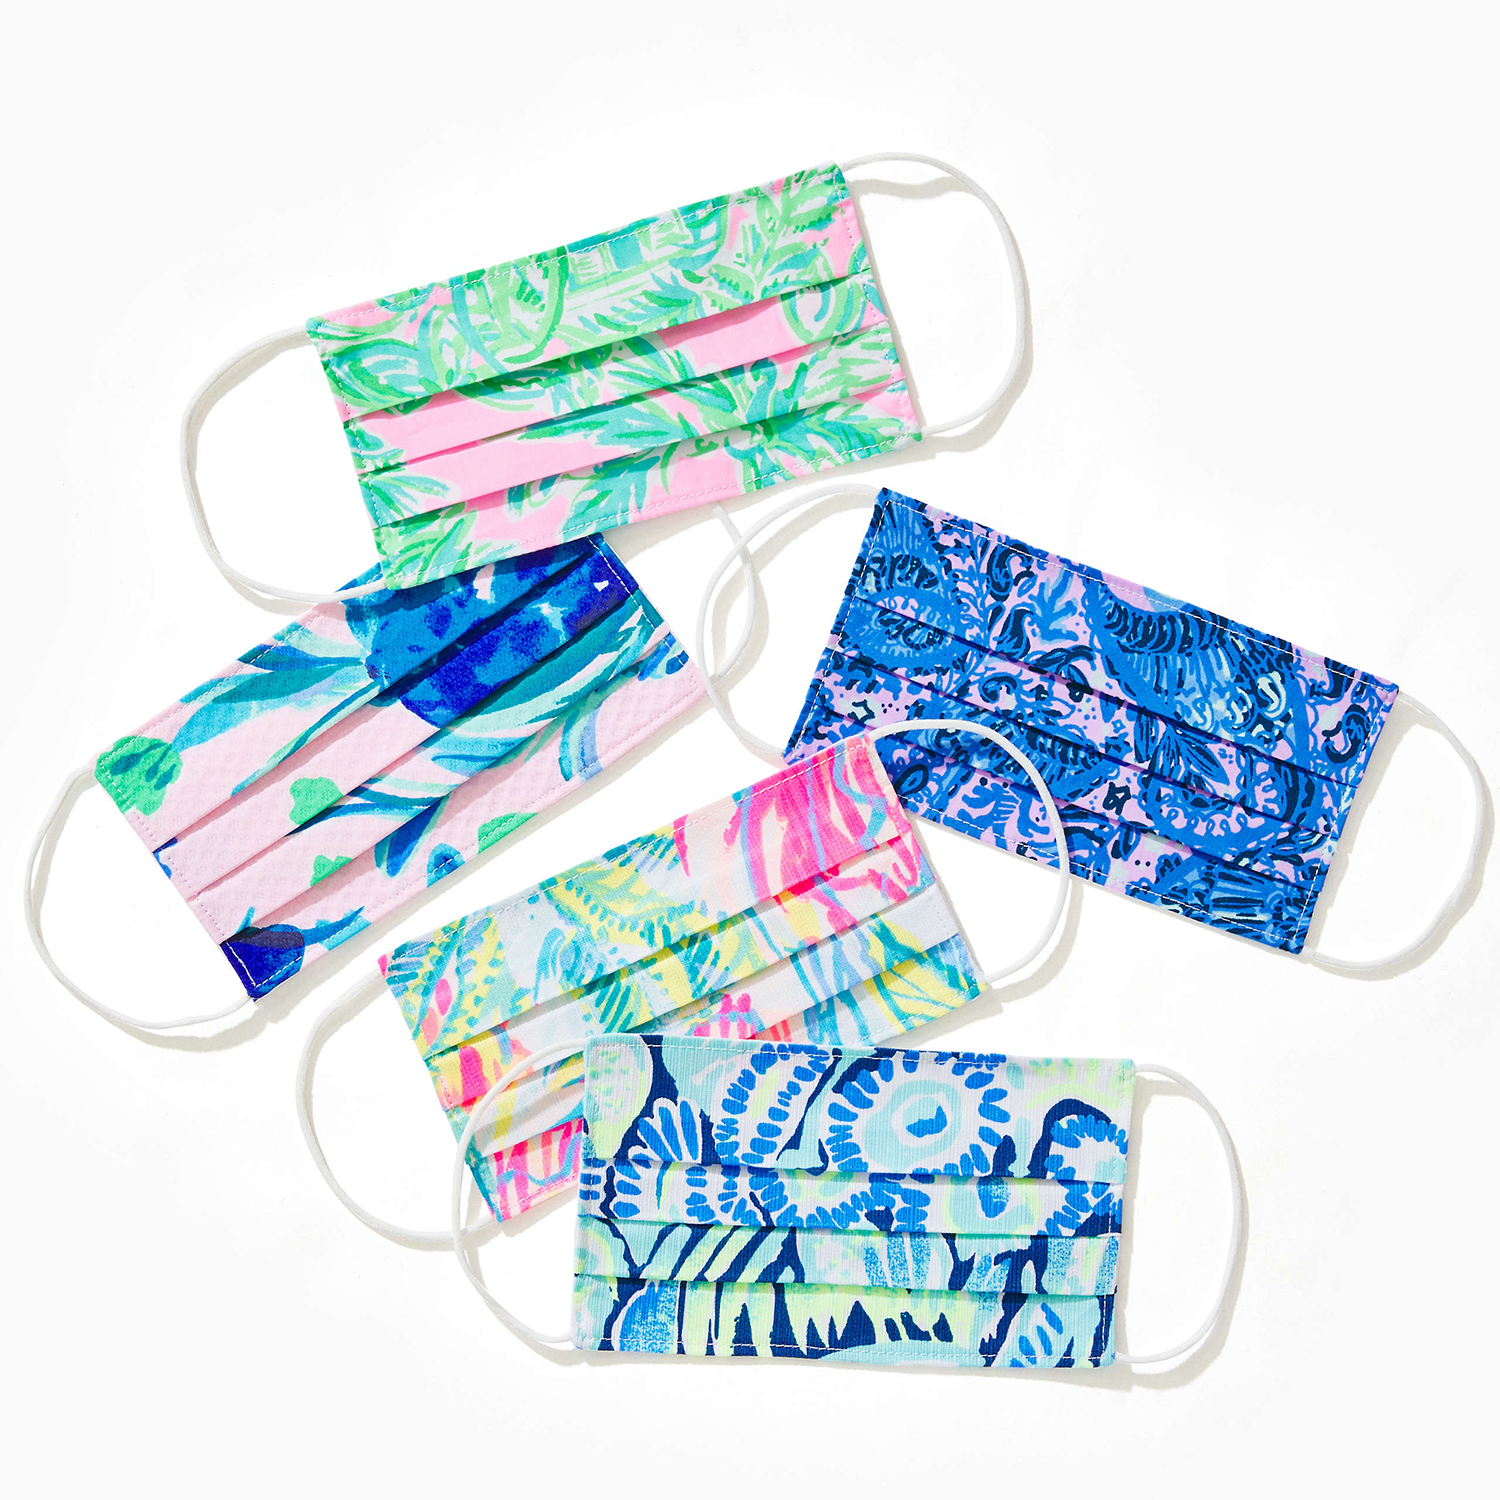 Lilly Pulitzer Printed Non-Medical Face Mask